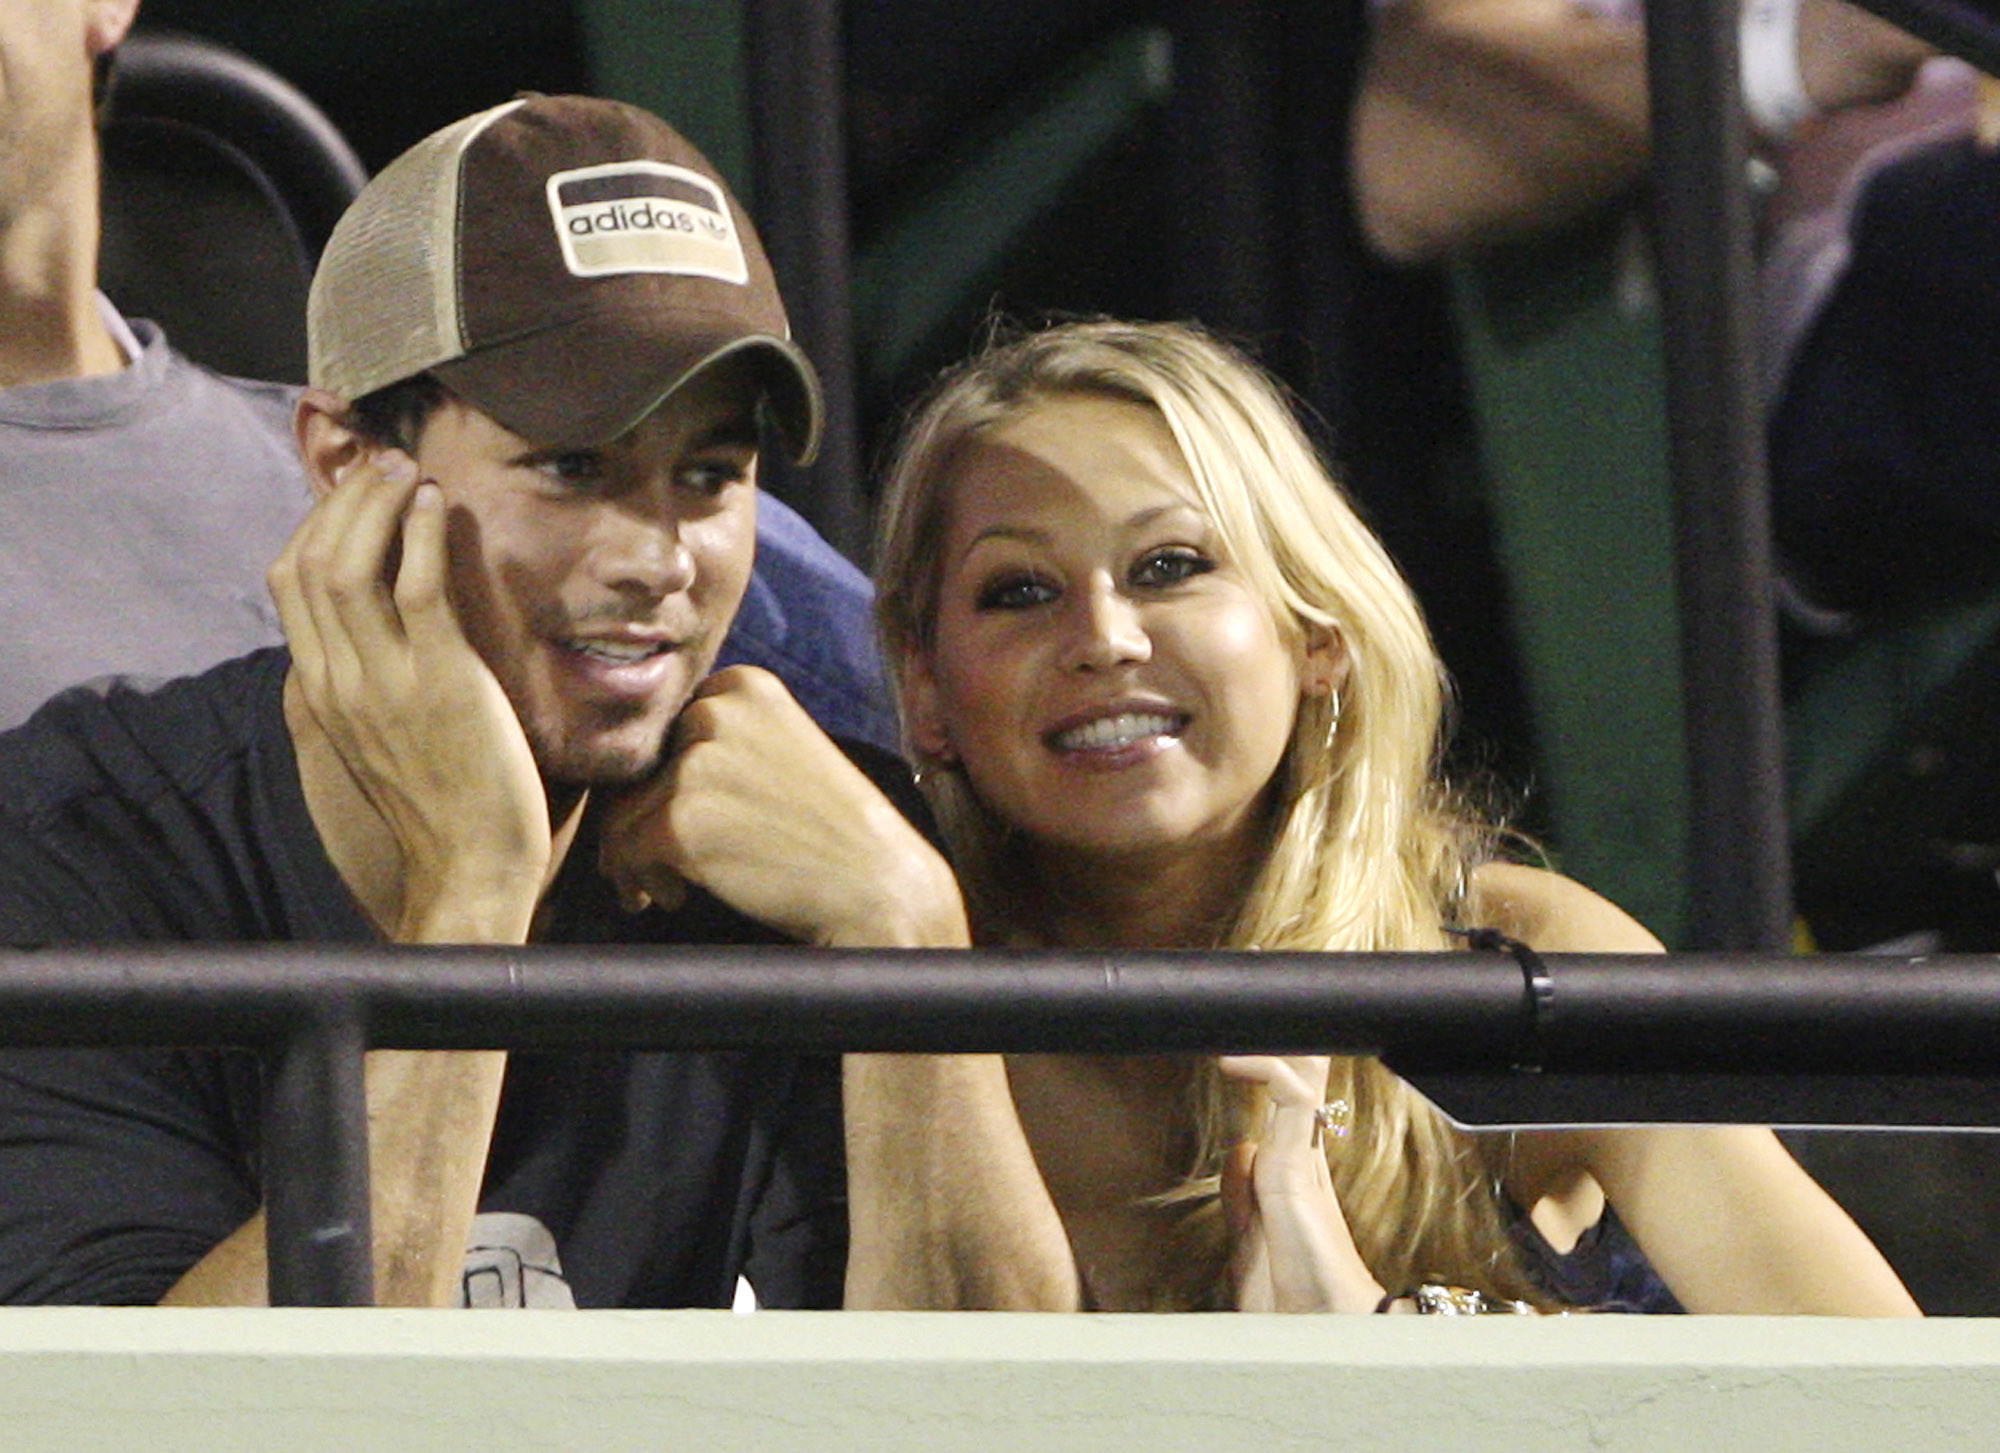 Enrique Iglesias and Anna Kournikova welcome third child together